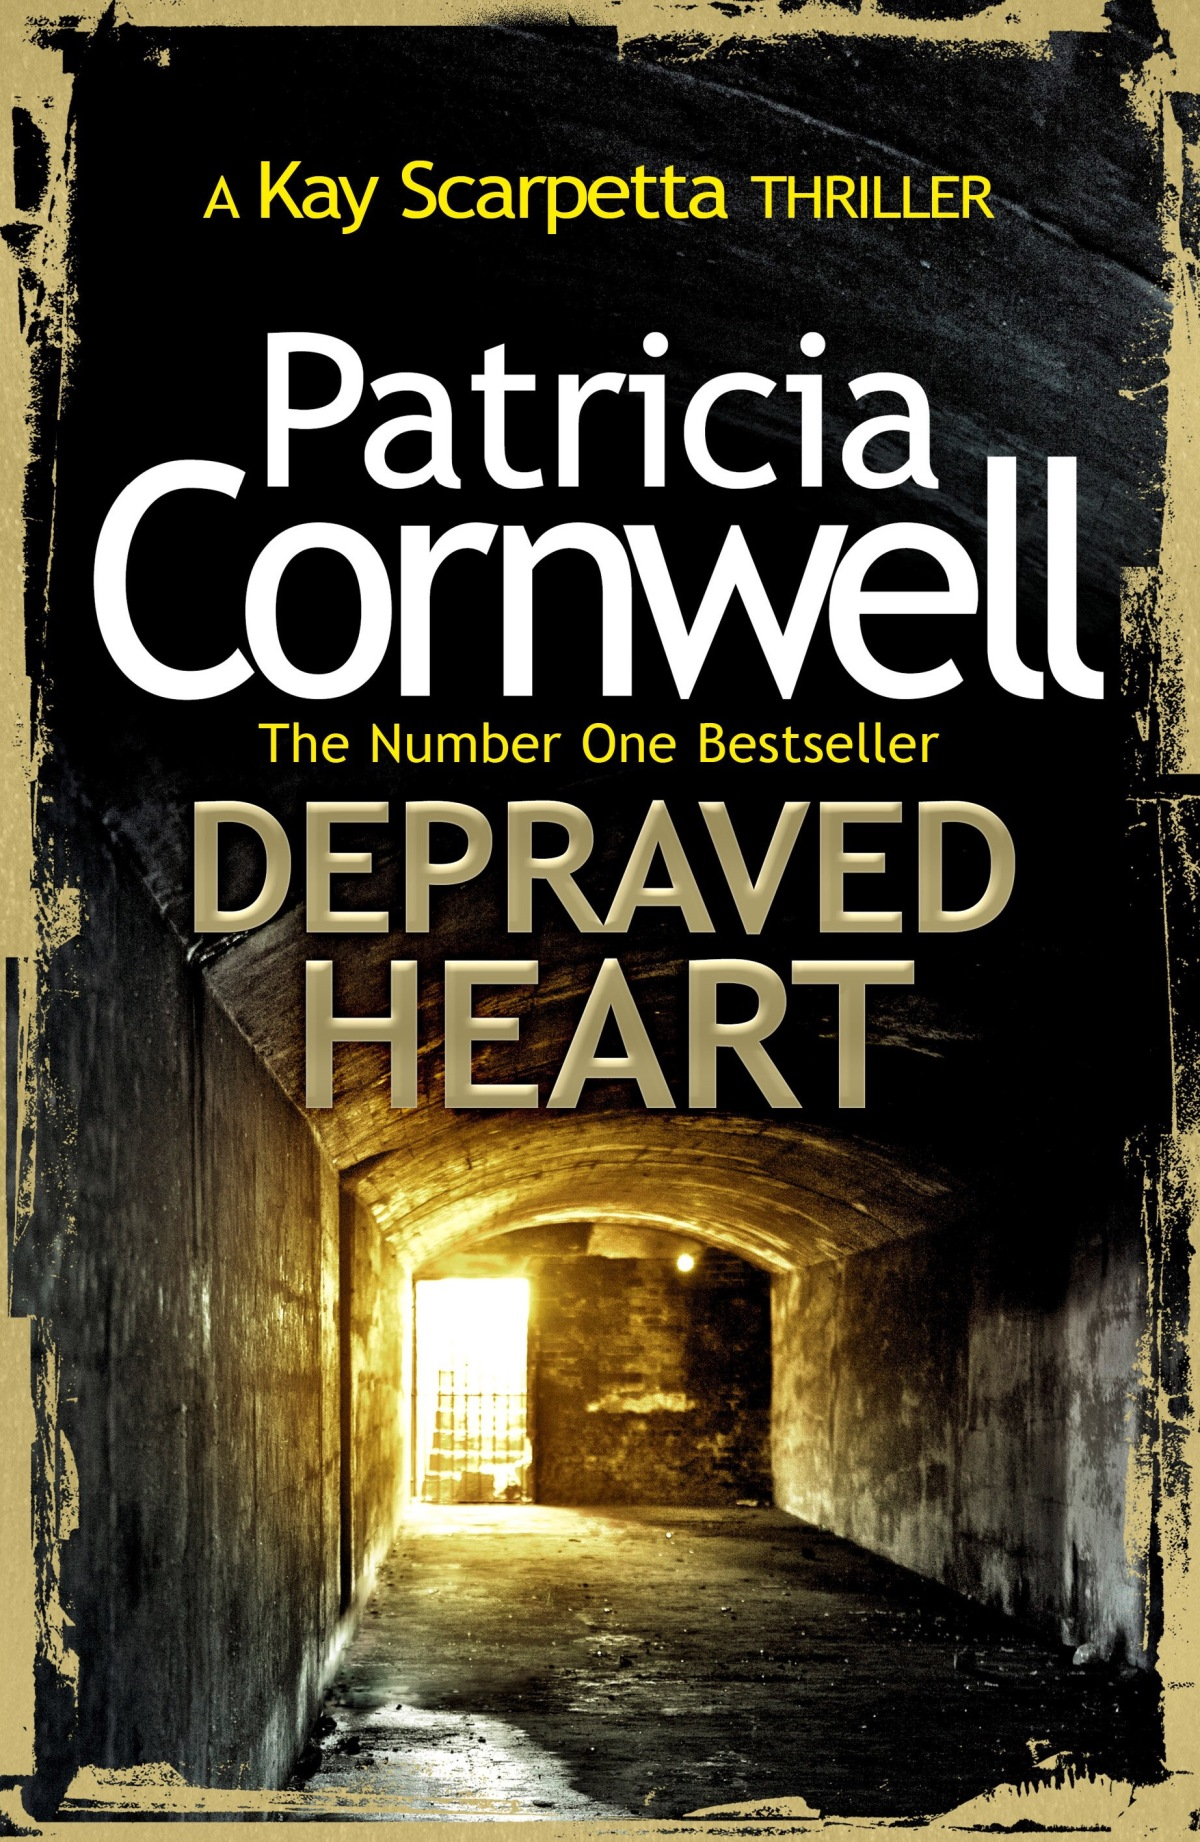 Depraved Heart by Patricia Cornwell ***BLOG TOUR***